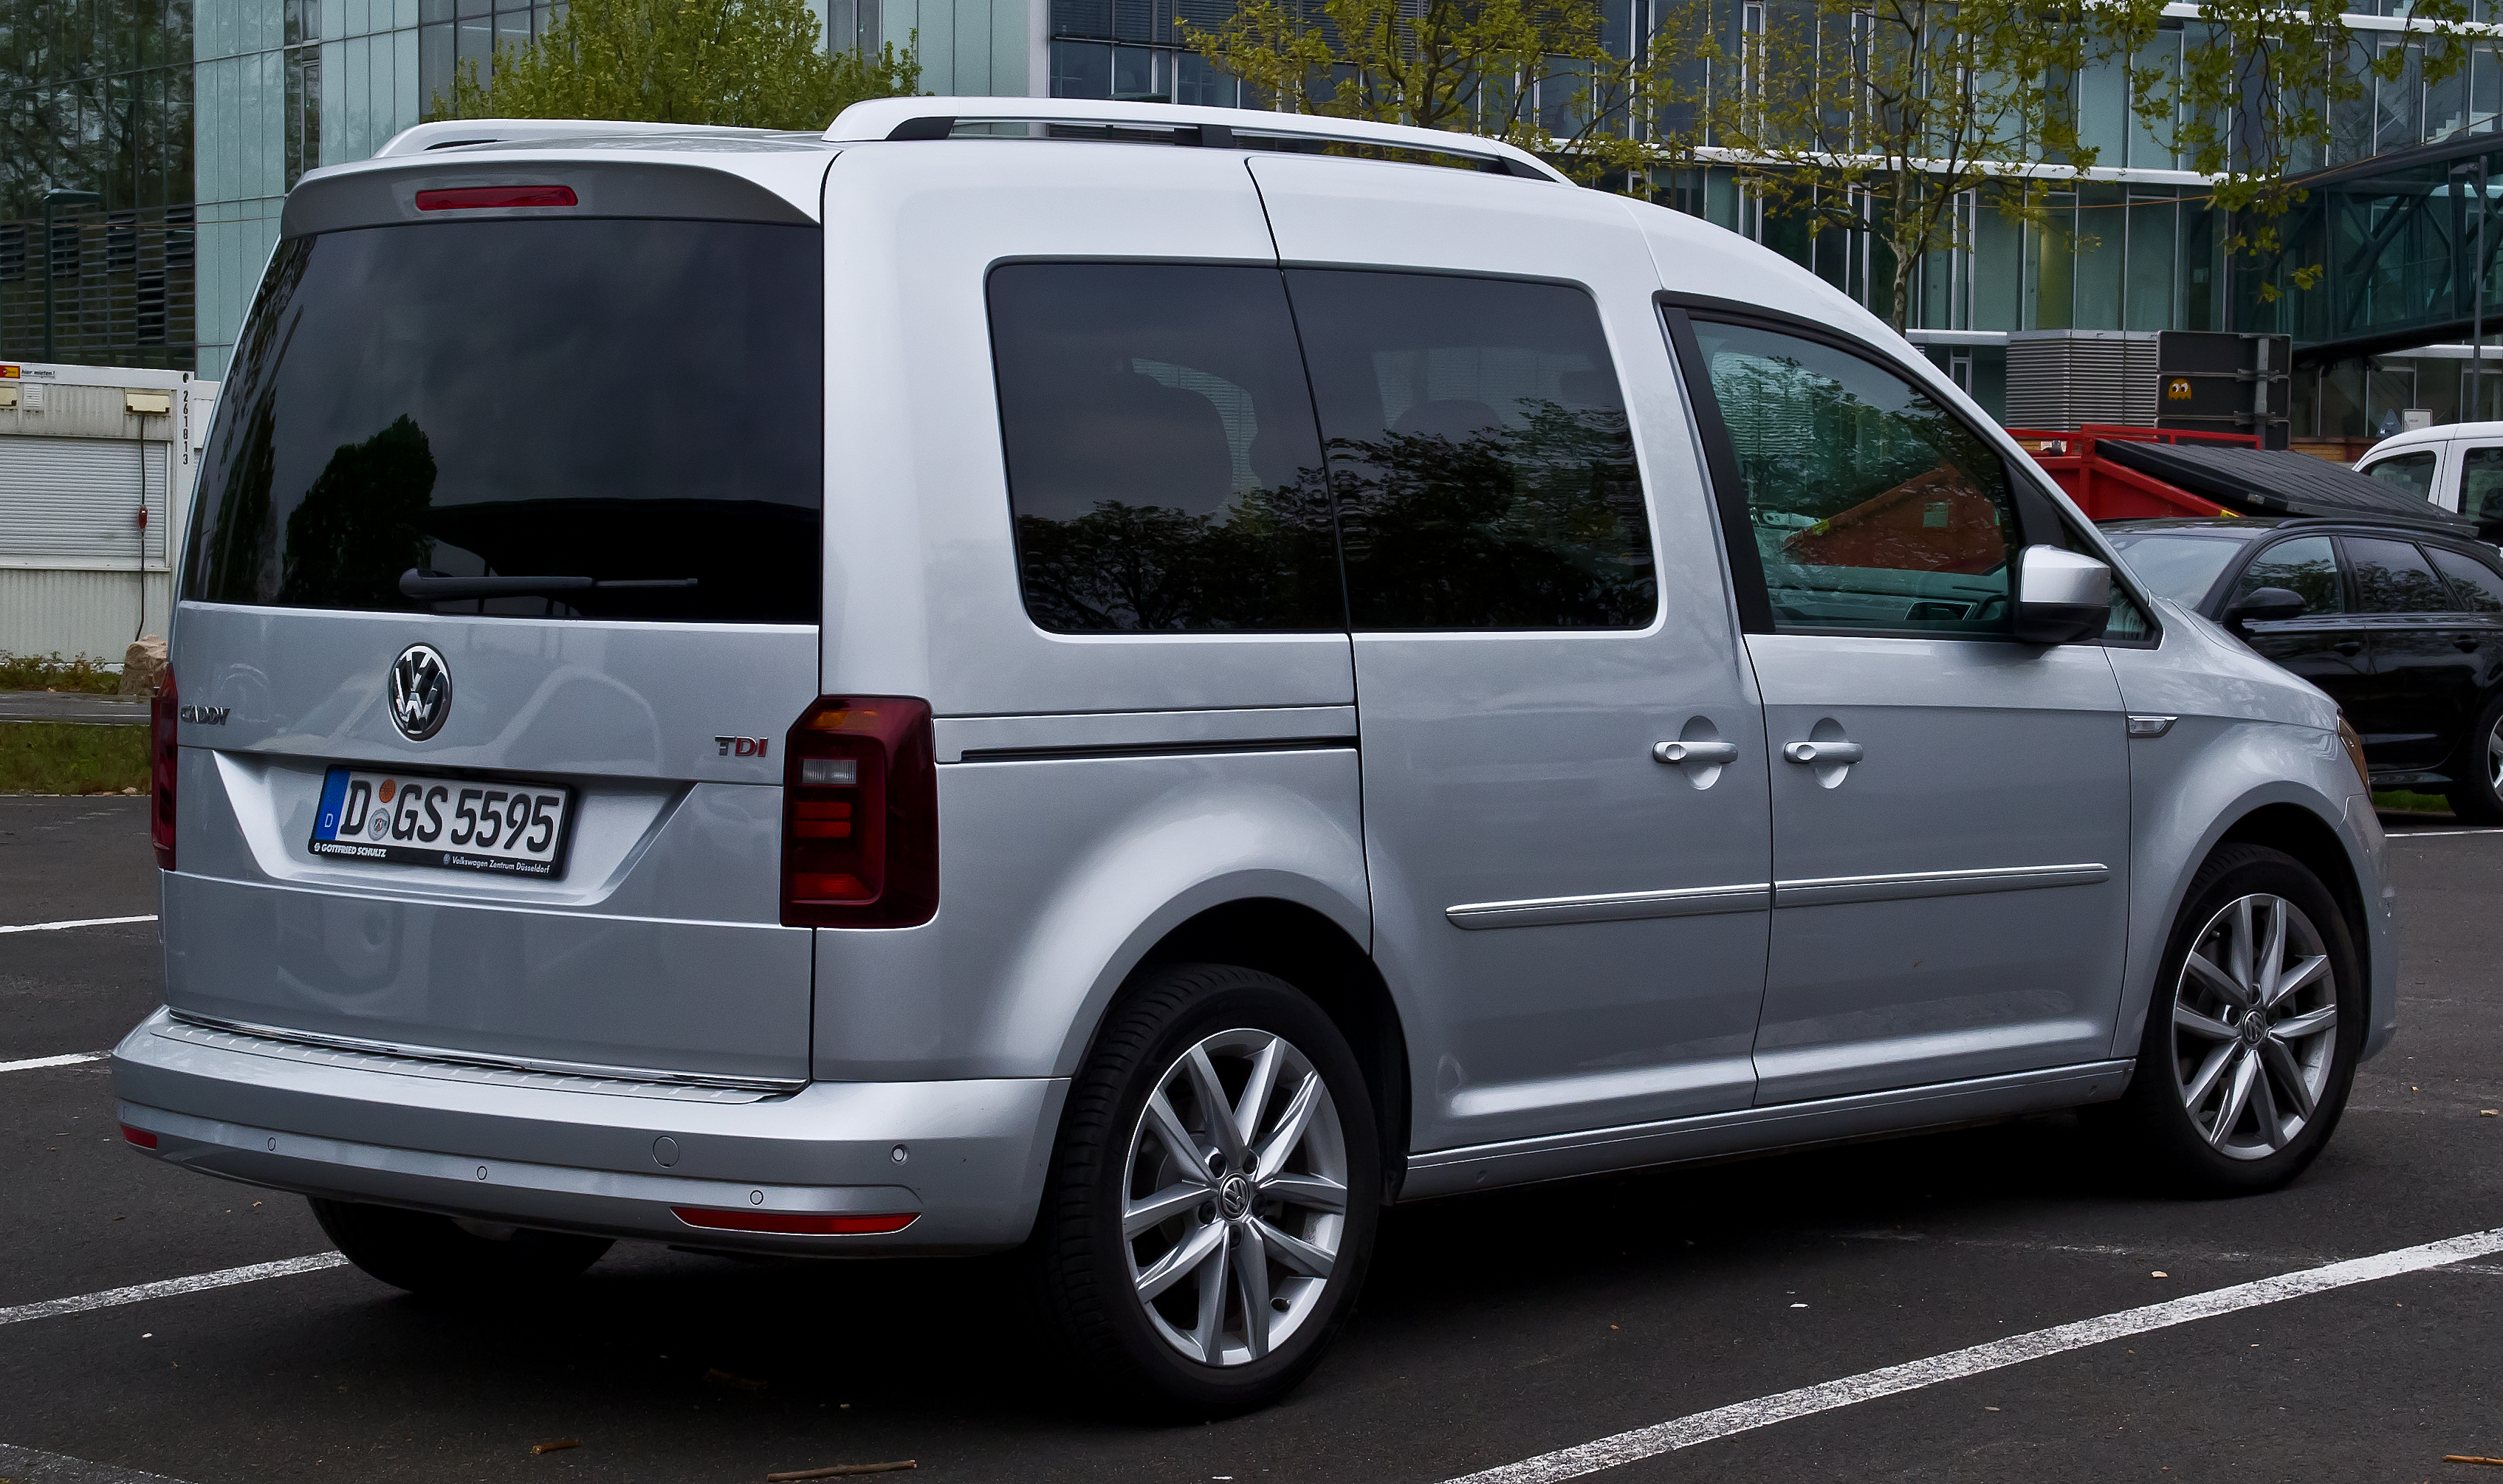 file:vw caddy 2.0 tdi bluemotion technology highline (2k, 2